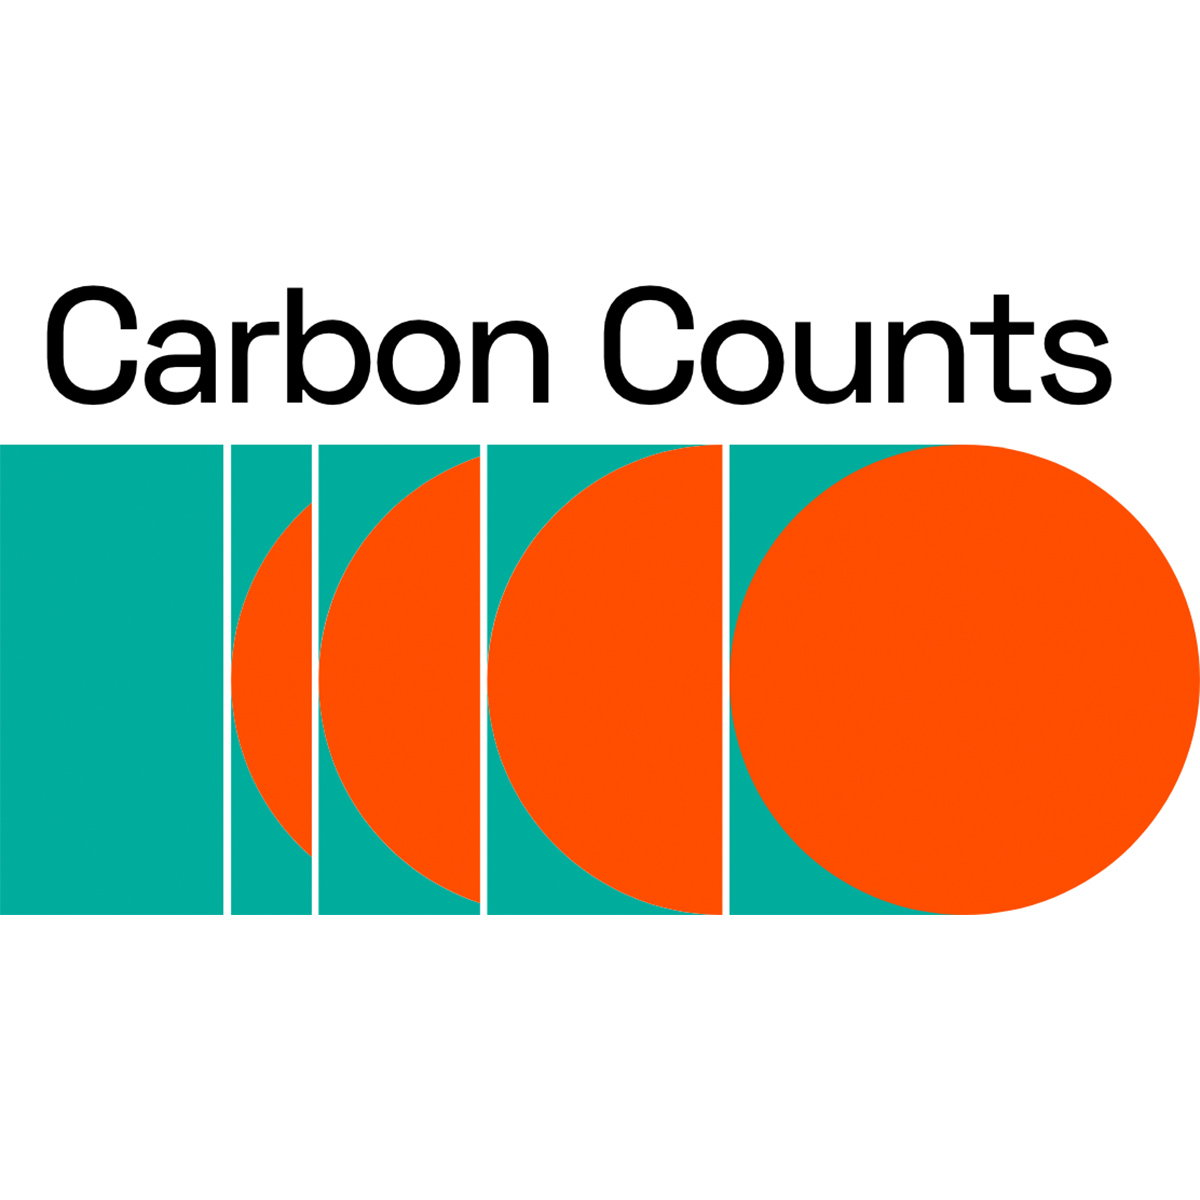 Carbon Counts Is Now an Online Interactive Exhibition